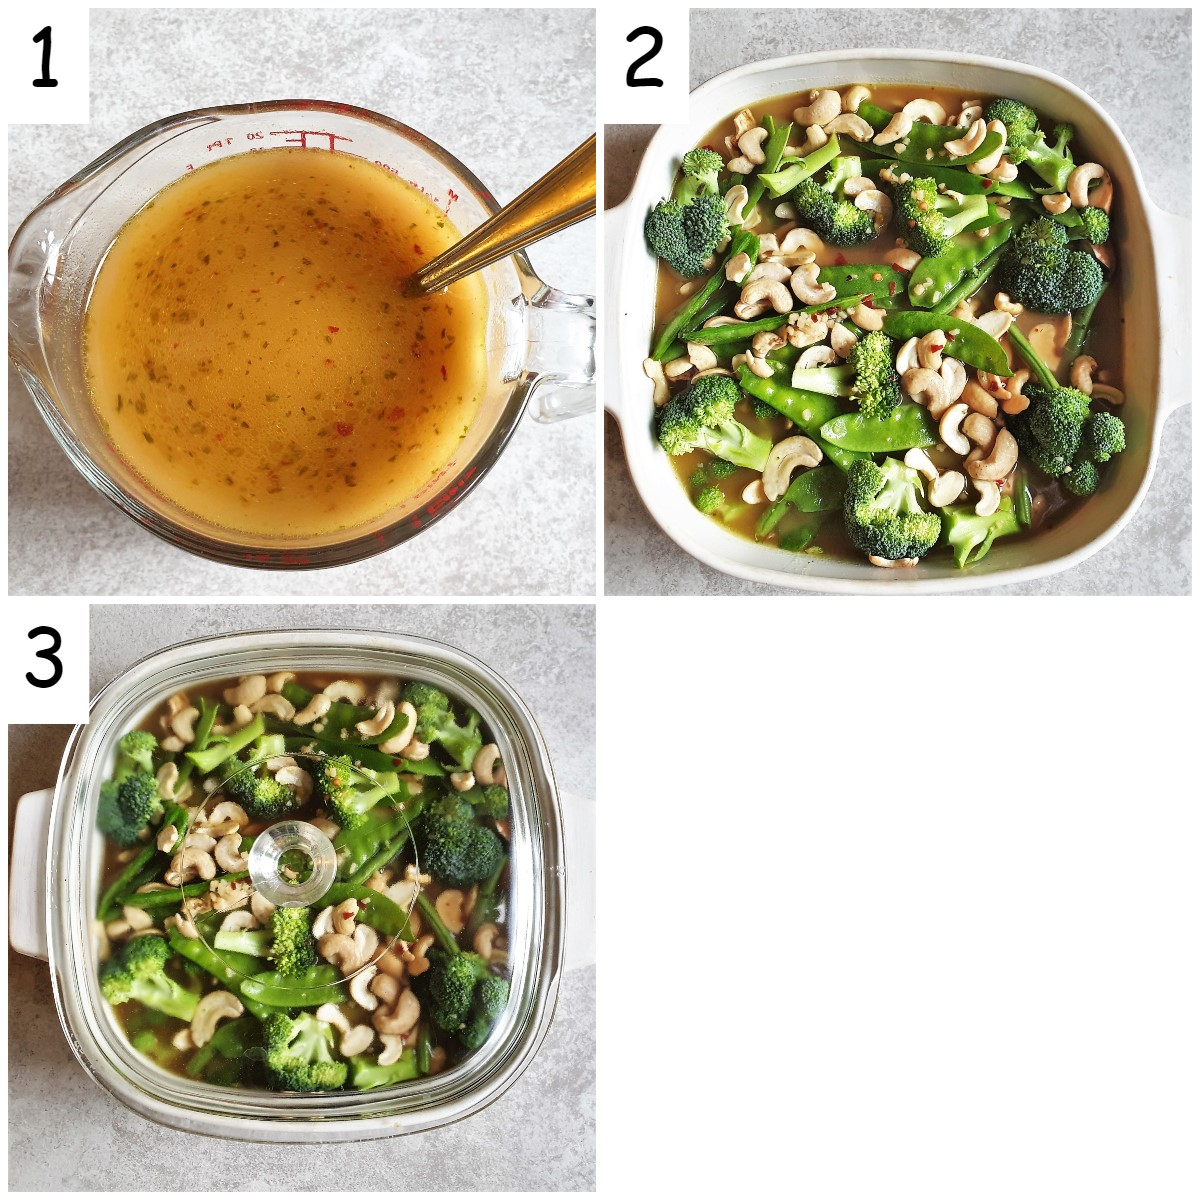 Collage of 3 images showing sauce being added to cashew chicken before it is baked.